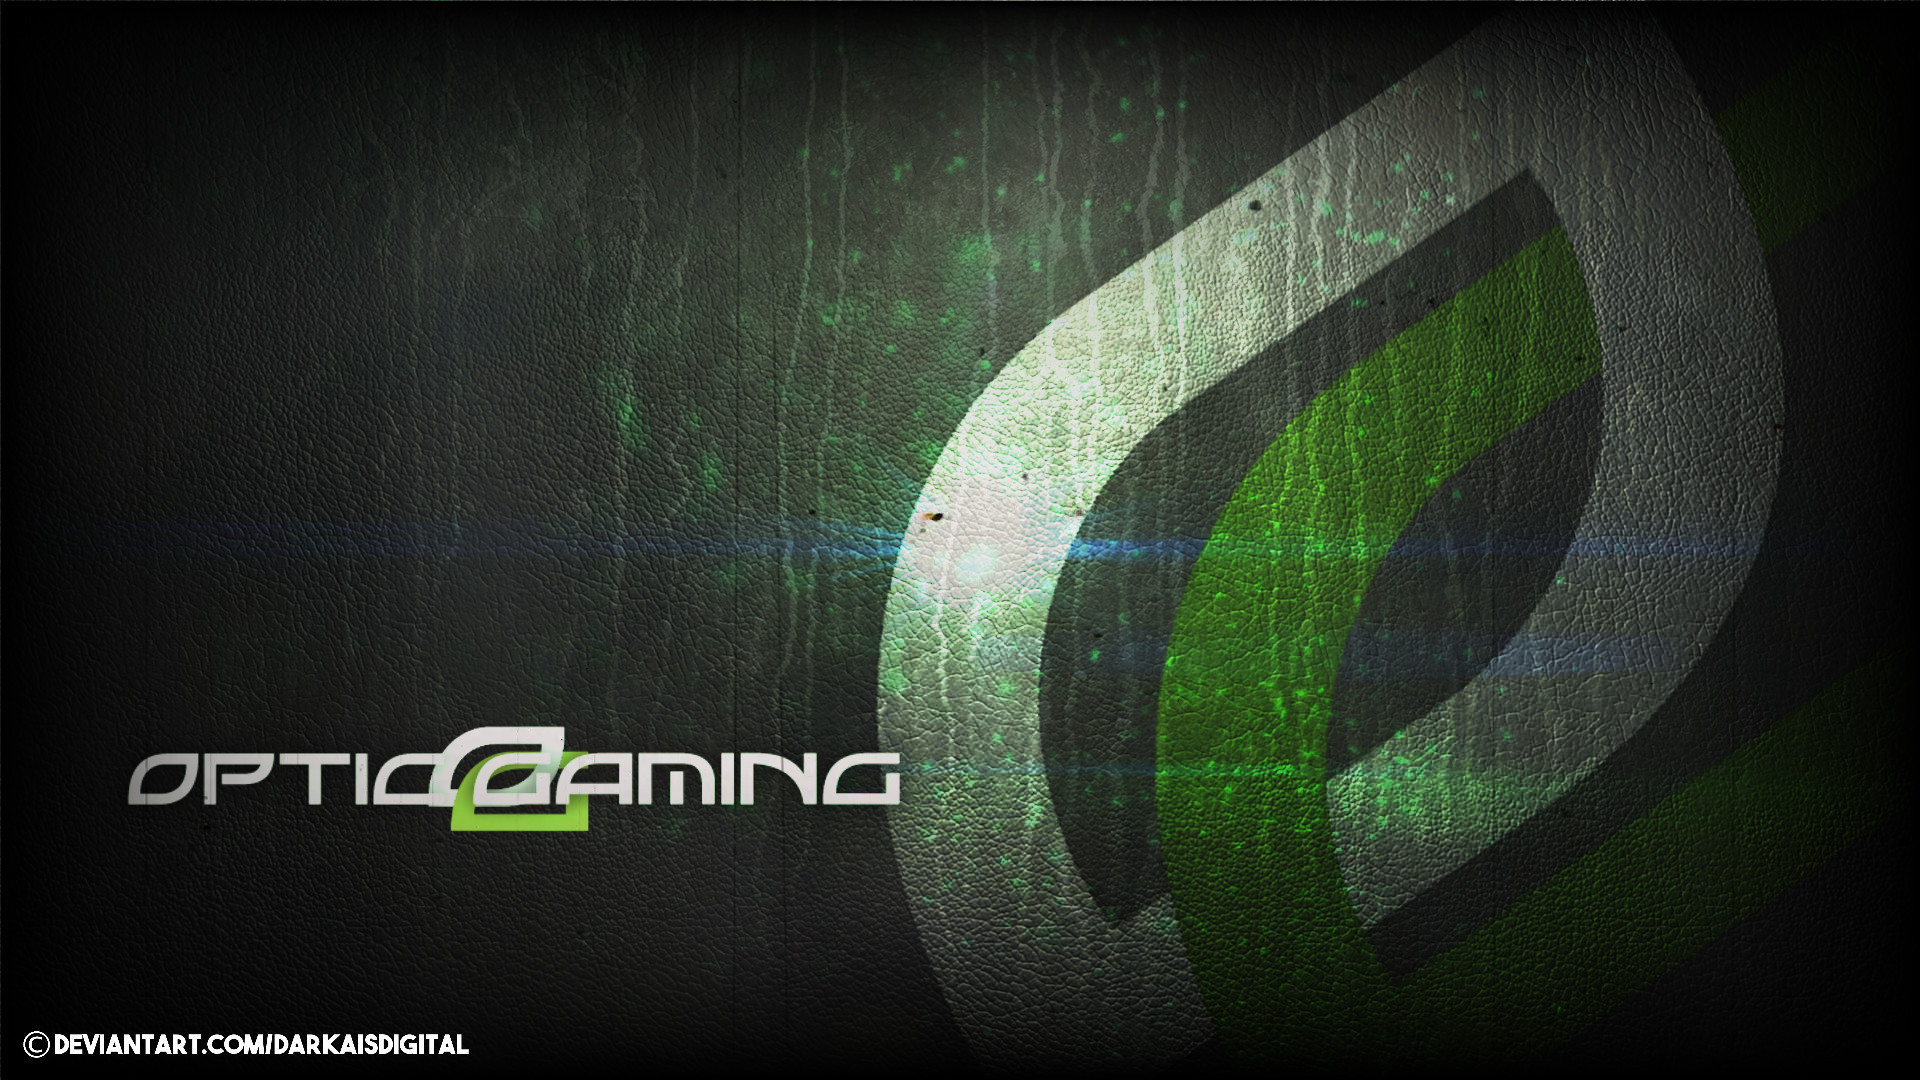 1920x1080 Fan-Made Wallpaper for the Optic Gaming eSports Org.